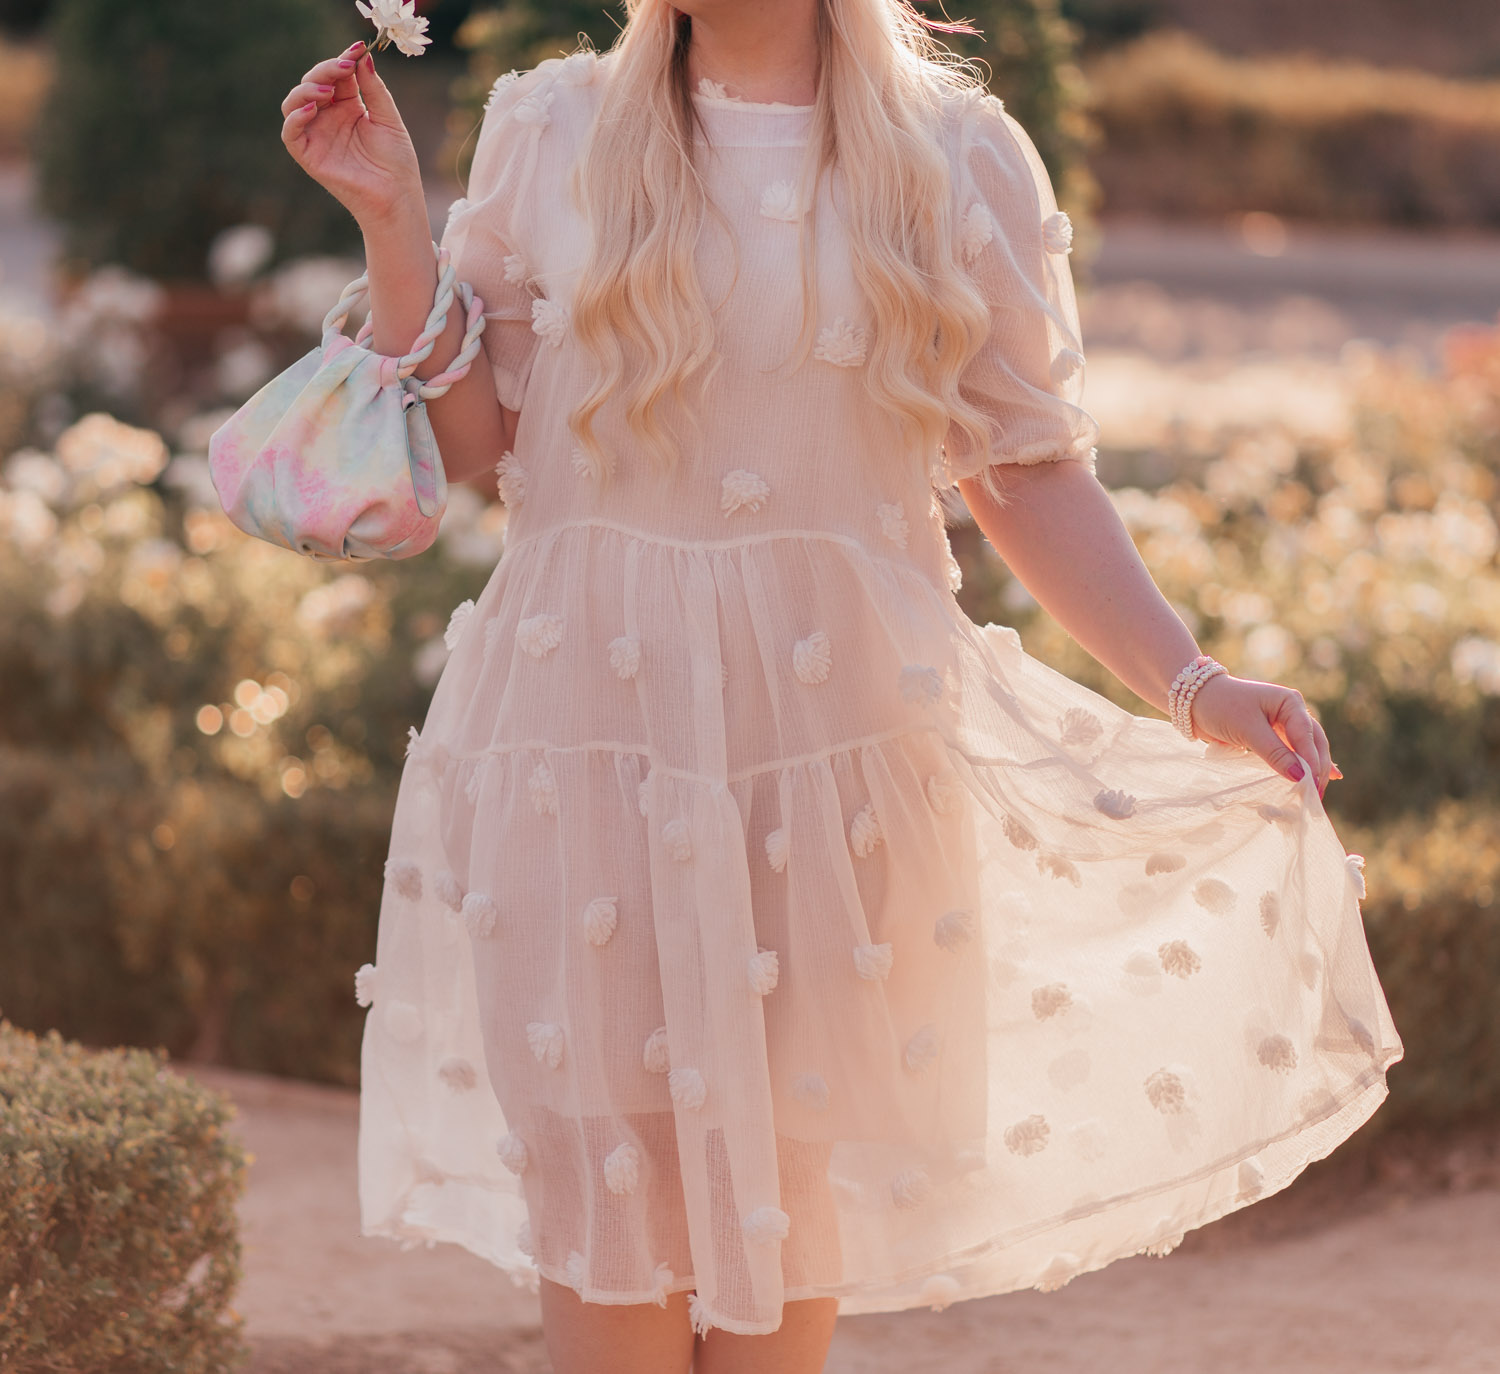 Feminine fashion blogger Elizabeth Hugen of Lizzie in Lace shares a Girly Summer Outfit Idea with a white summer dress and rainbow handbag